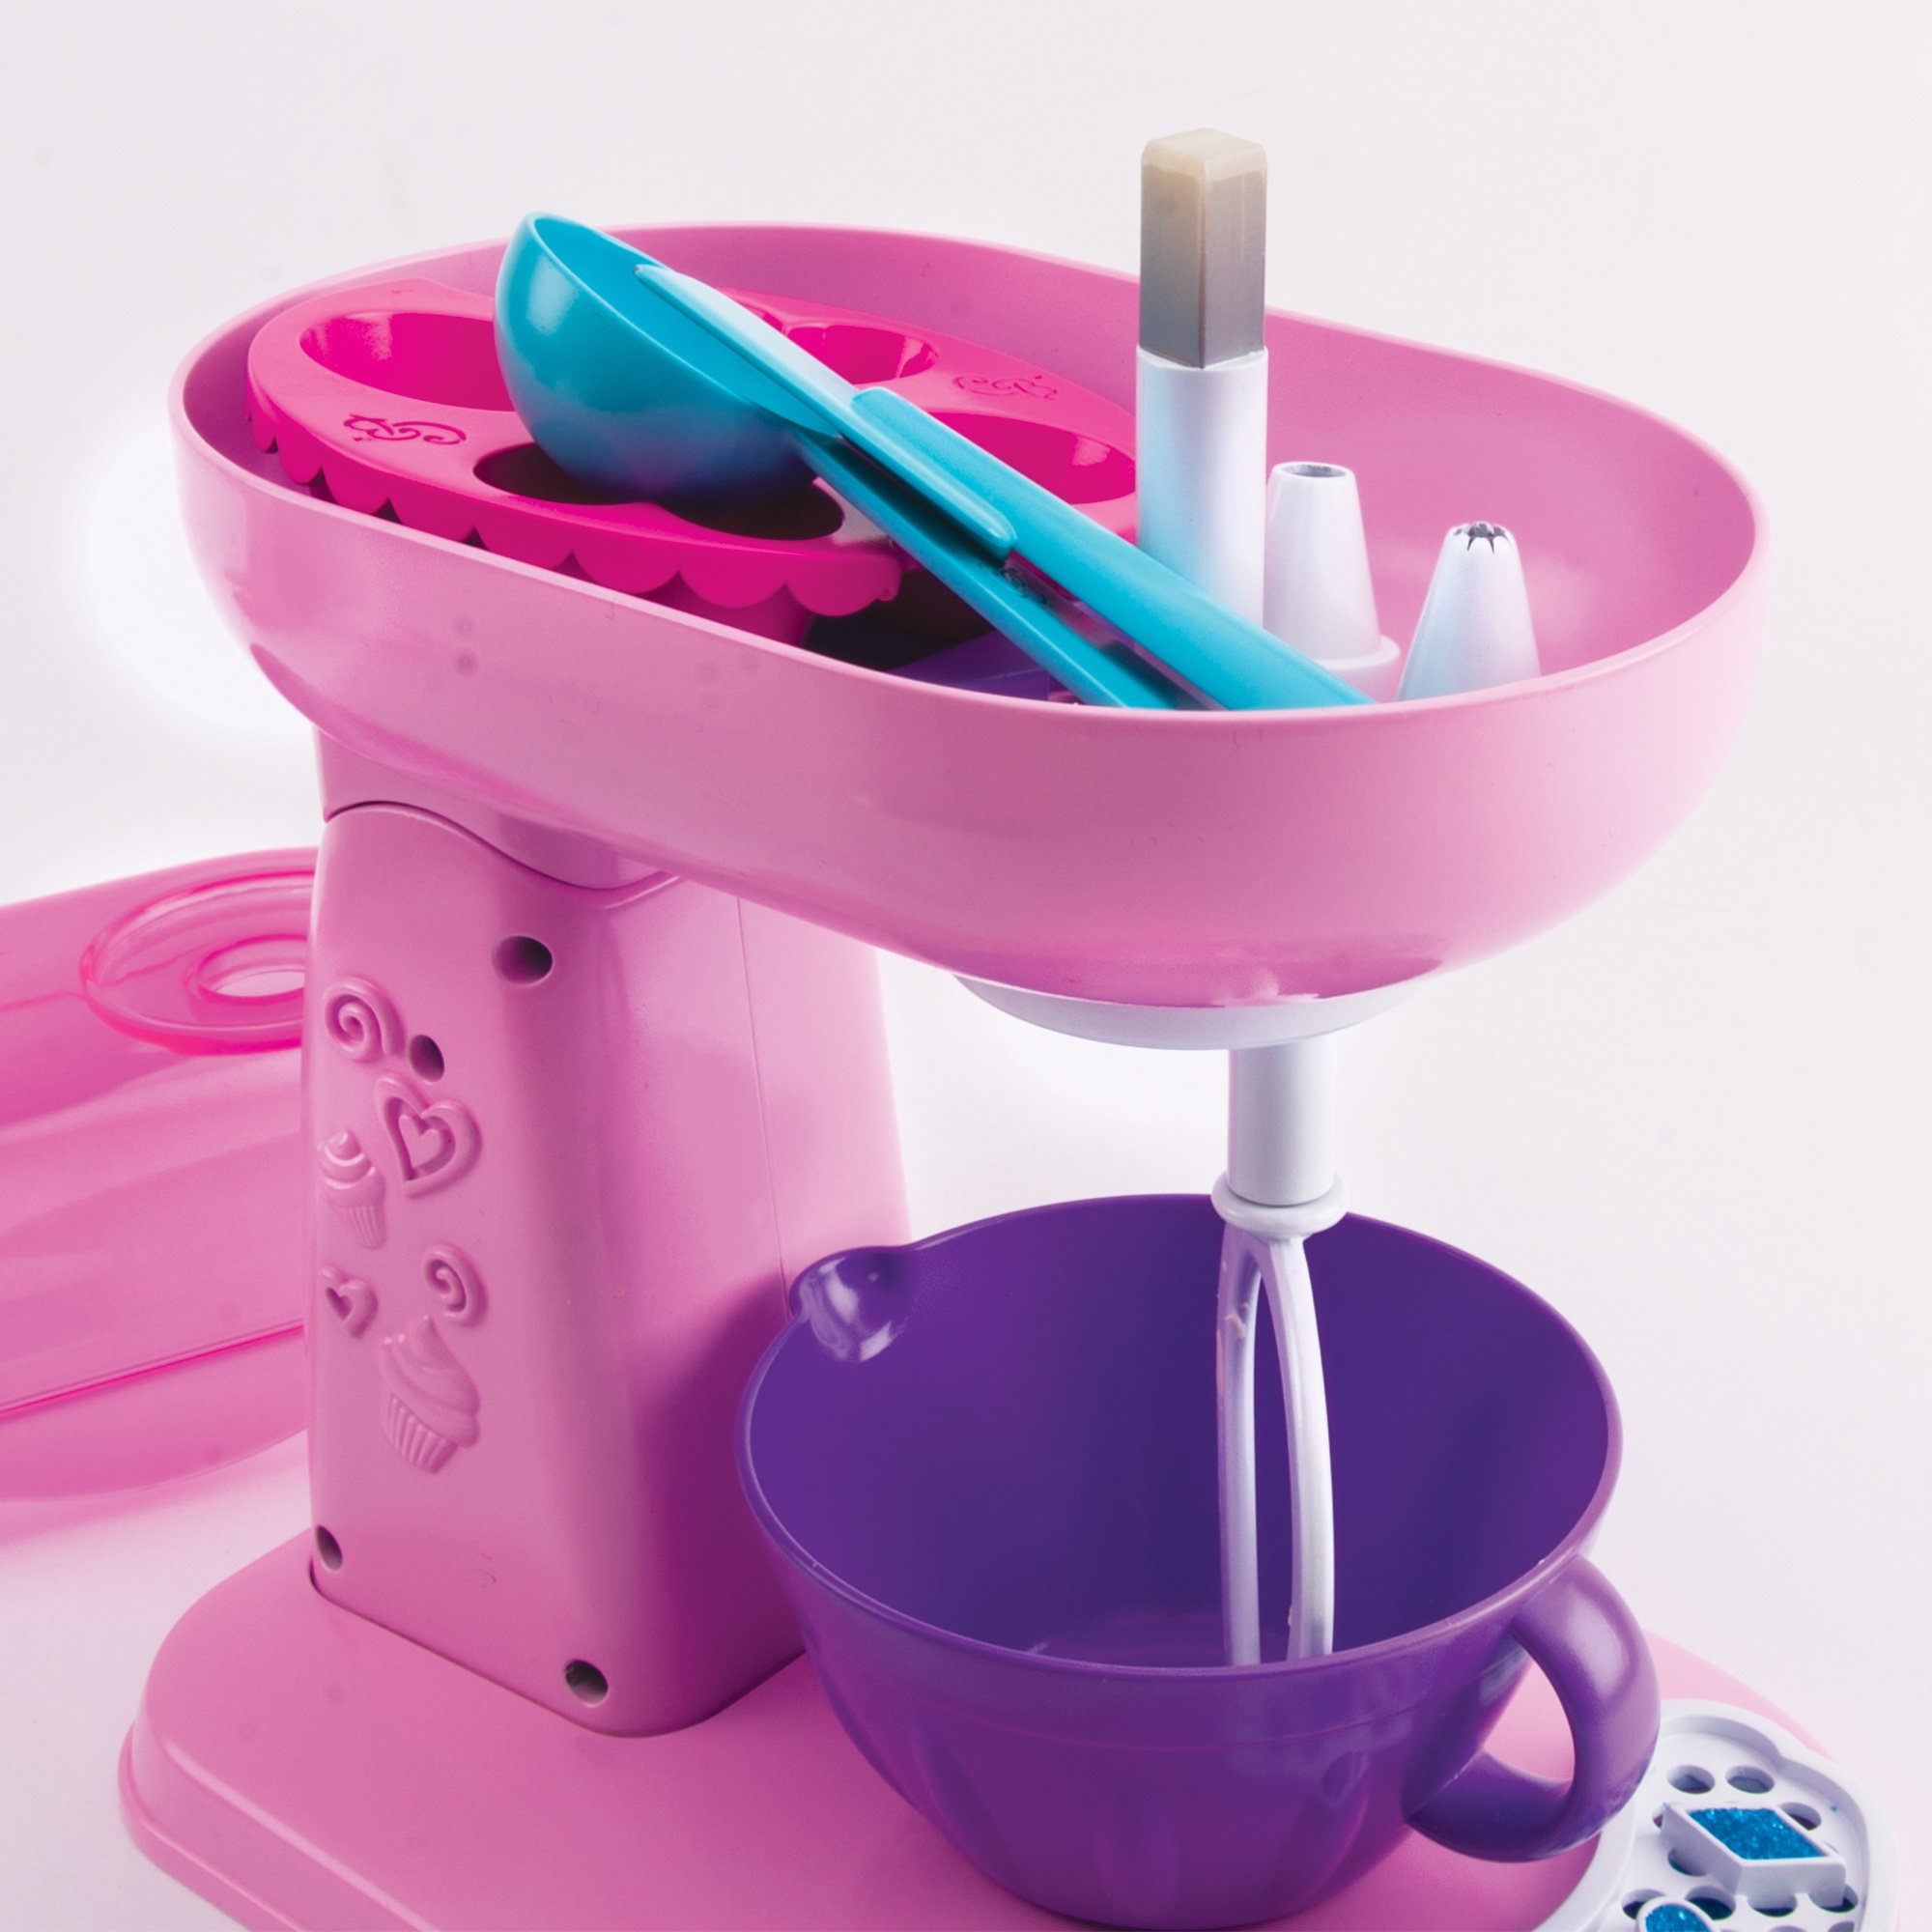 Cool Baker Magic Mixer Maker - Pink by Cool Baker (Image #7)